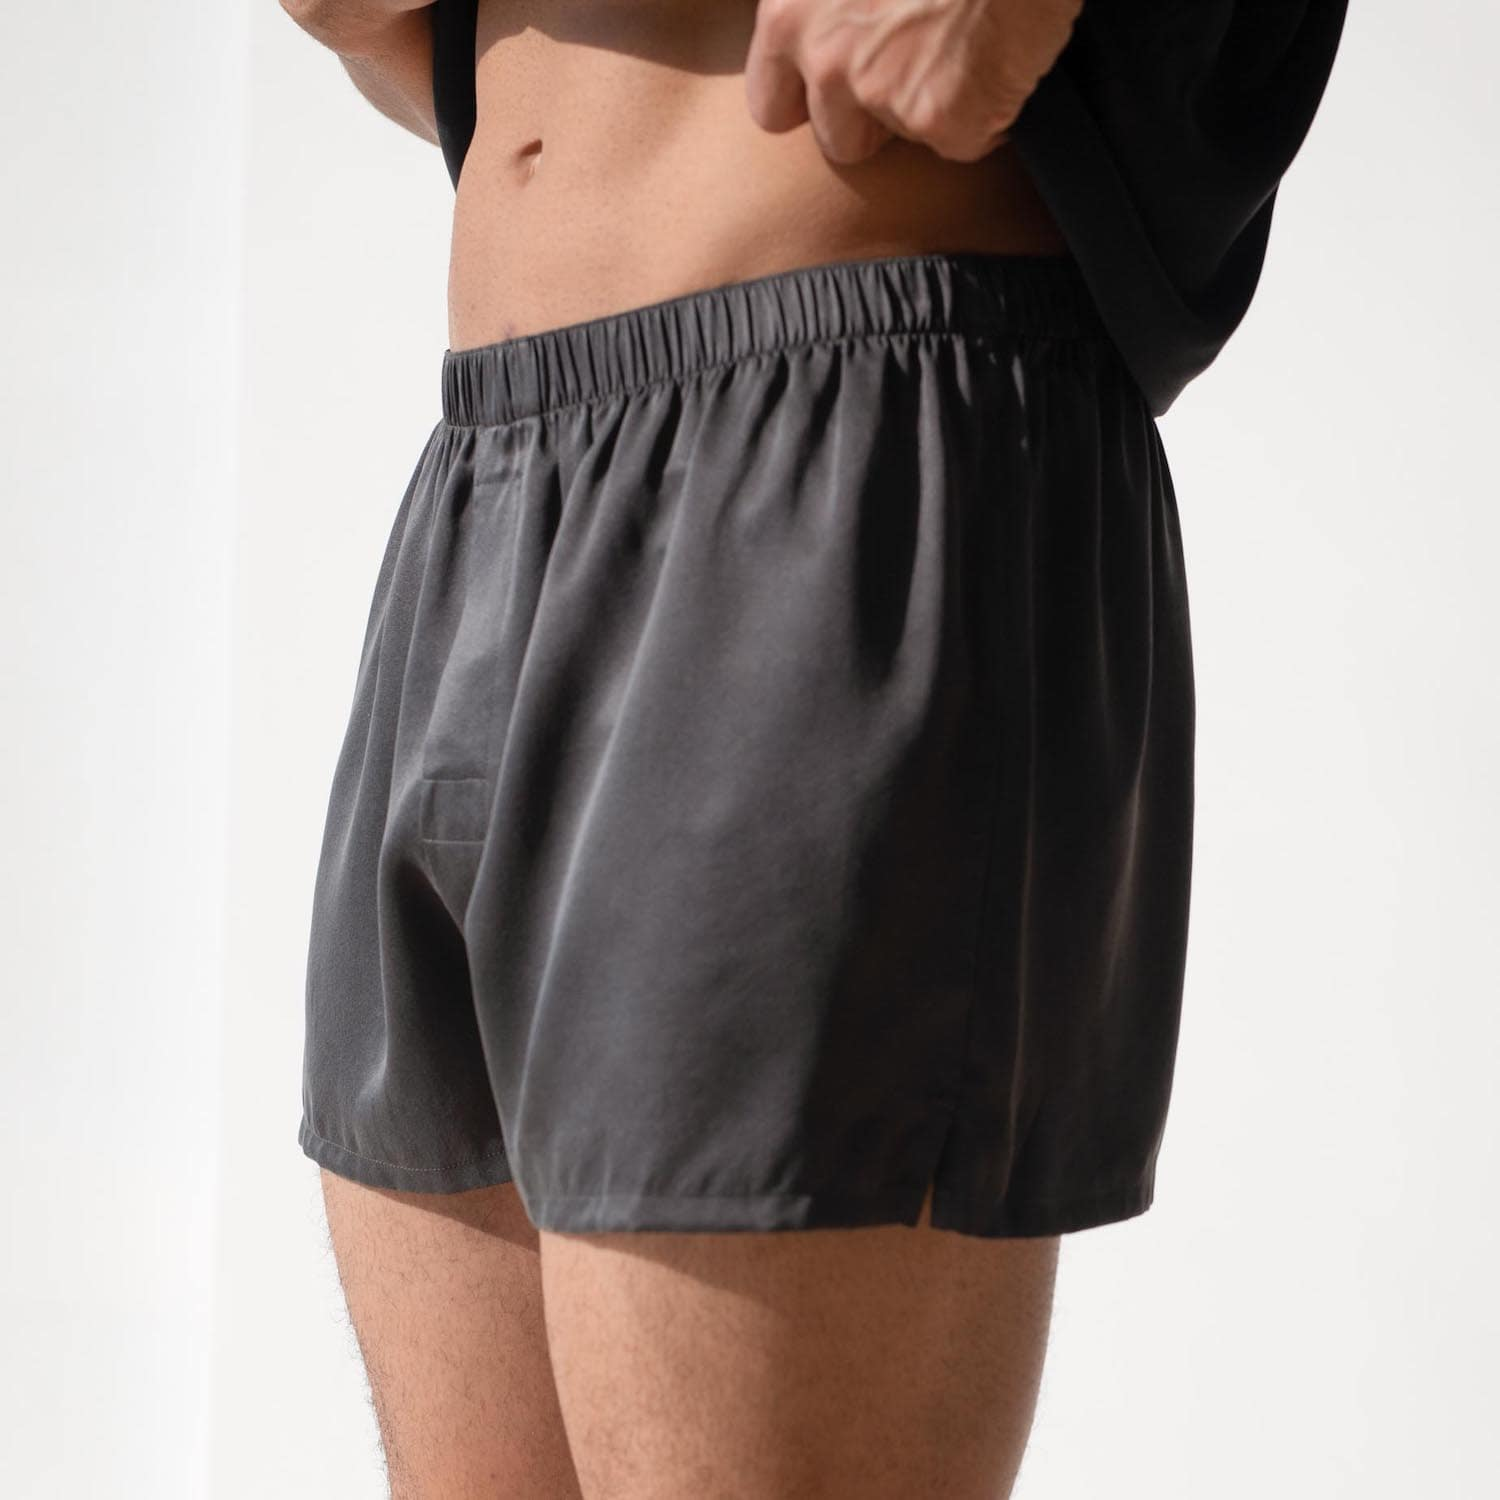 Lahgo Sleepwear Washable Boxer - #Eclipse